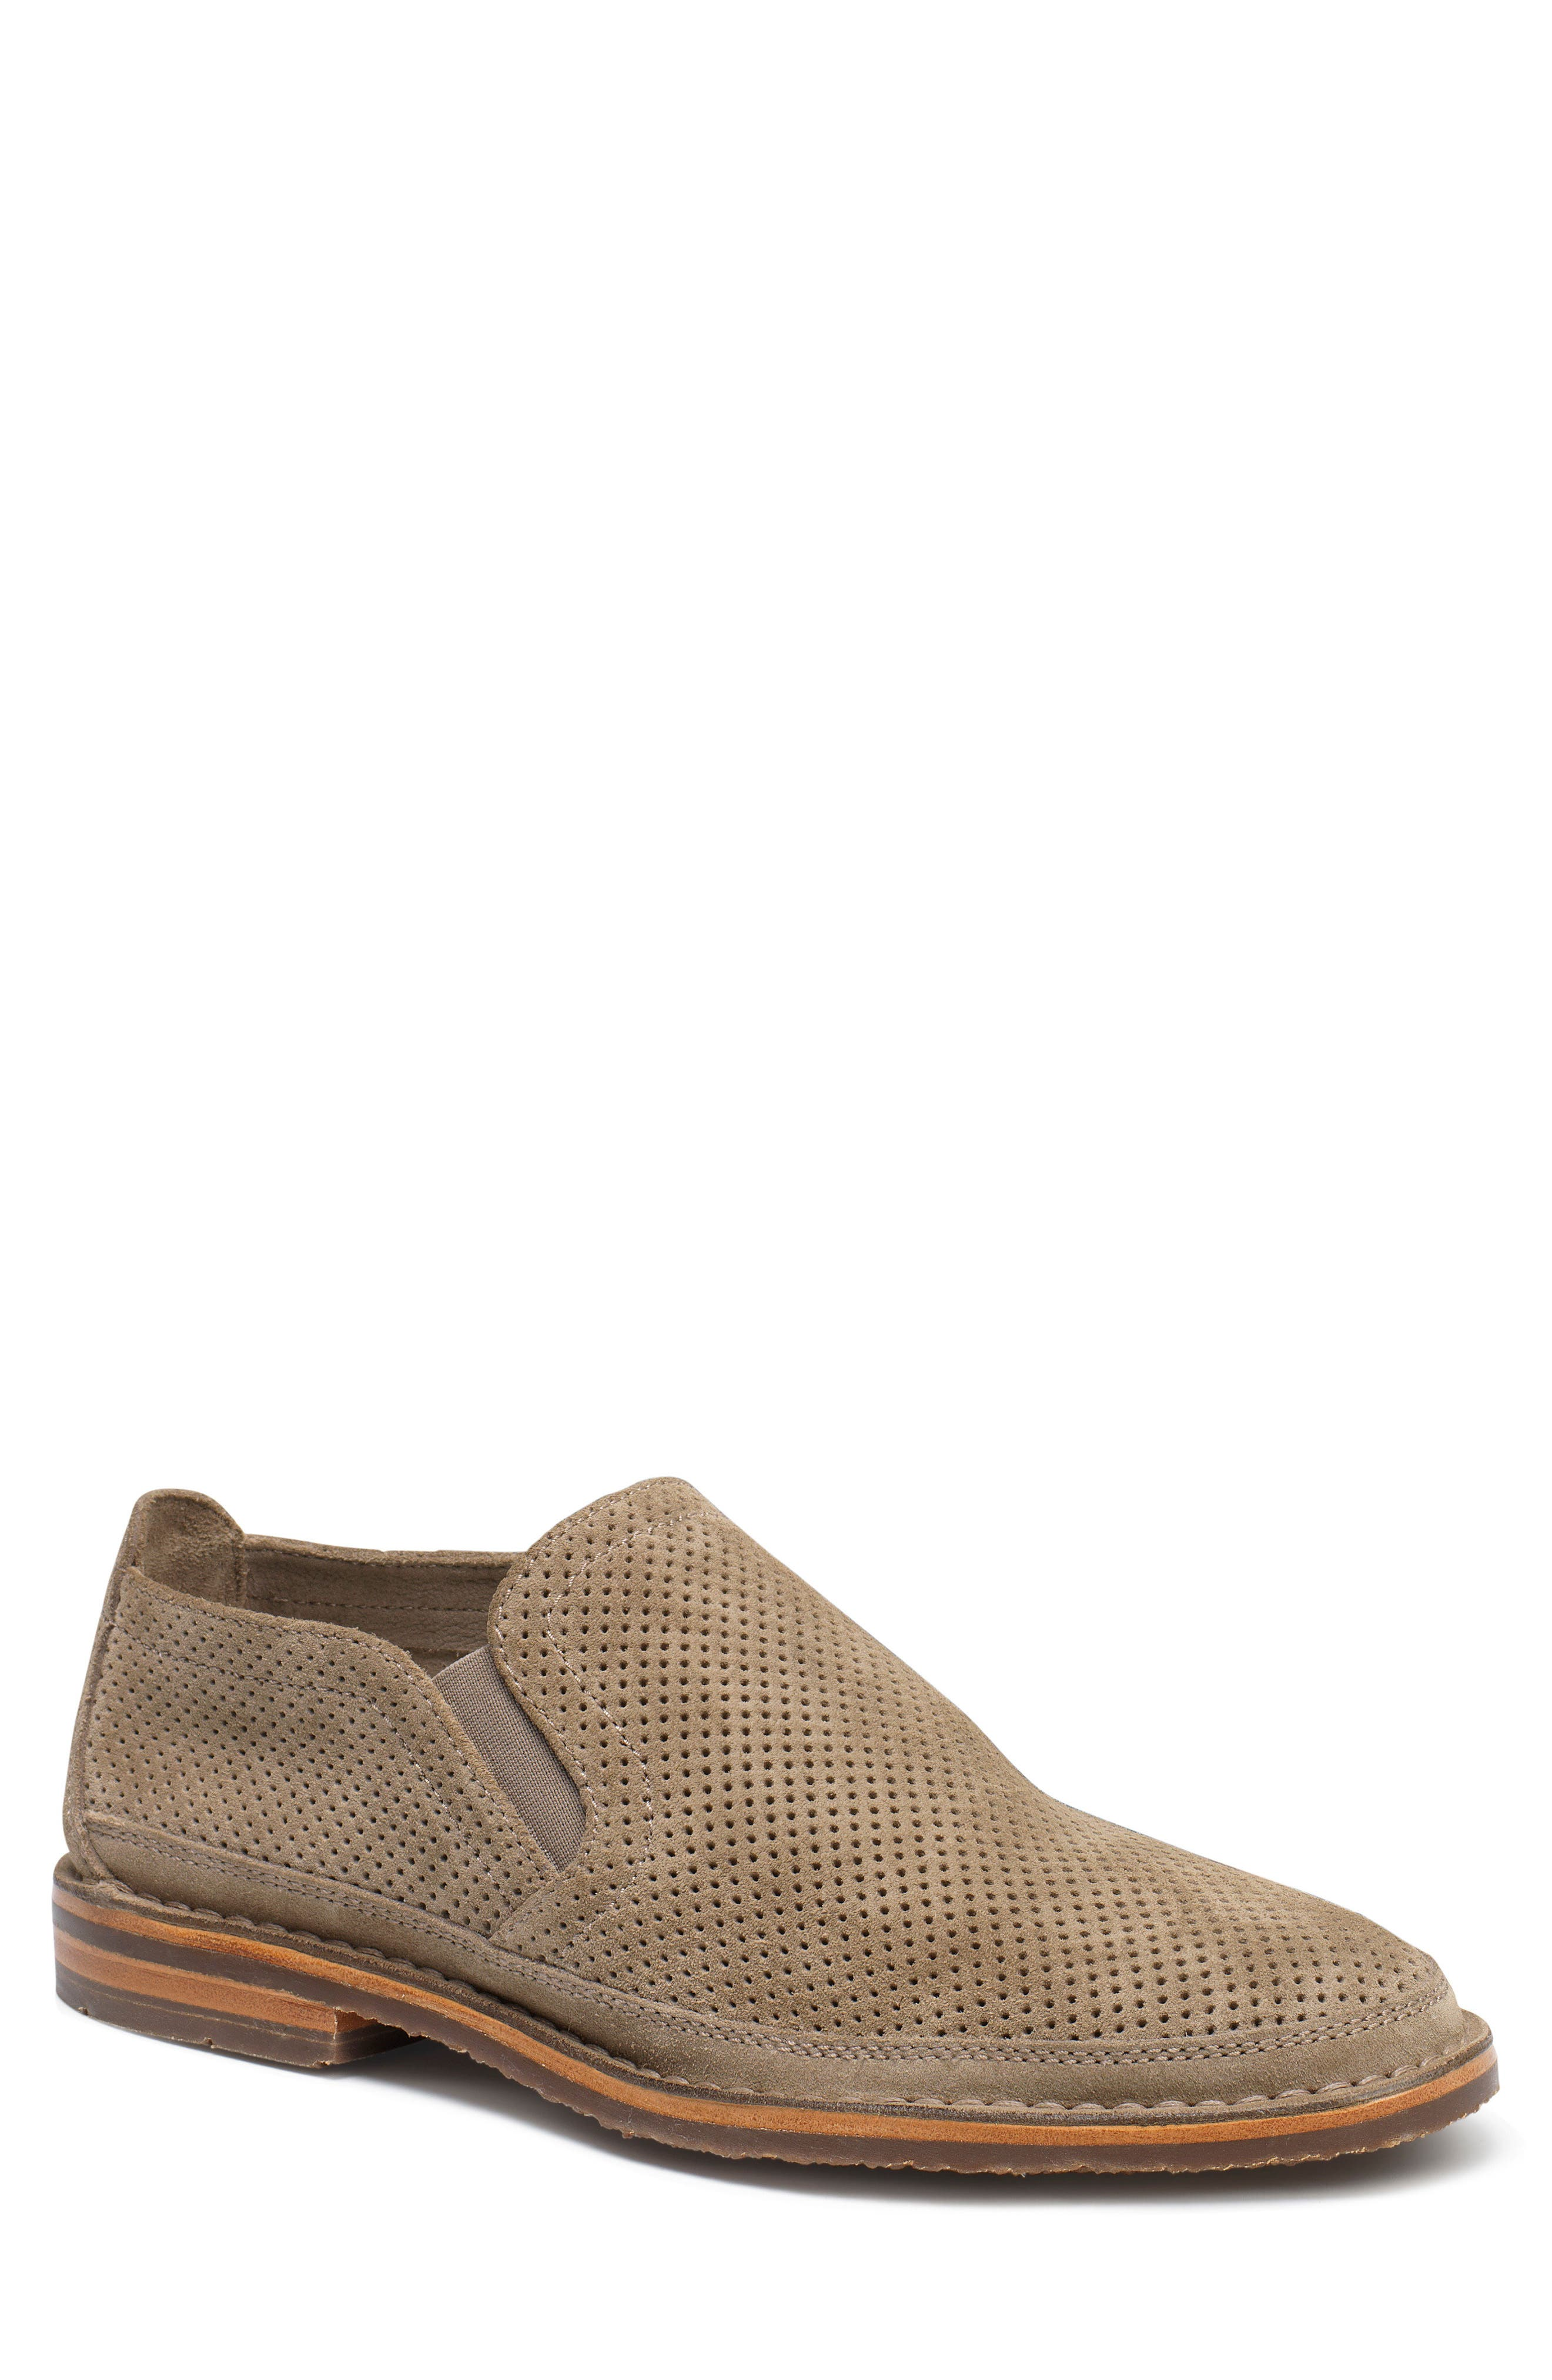 TRASK, Bradley Perforated Slip-On, Main thumbnail 1, color, TAUPE SUEDE